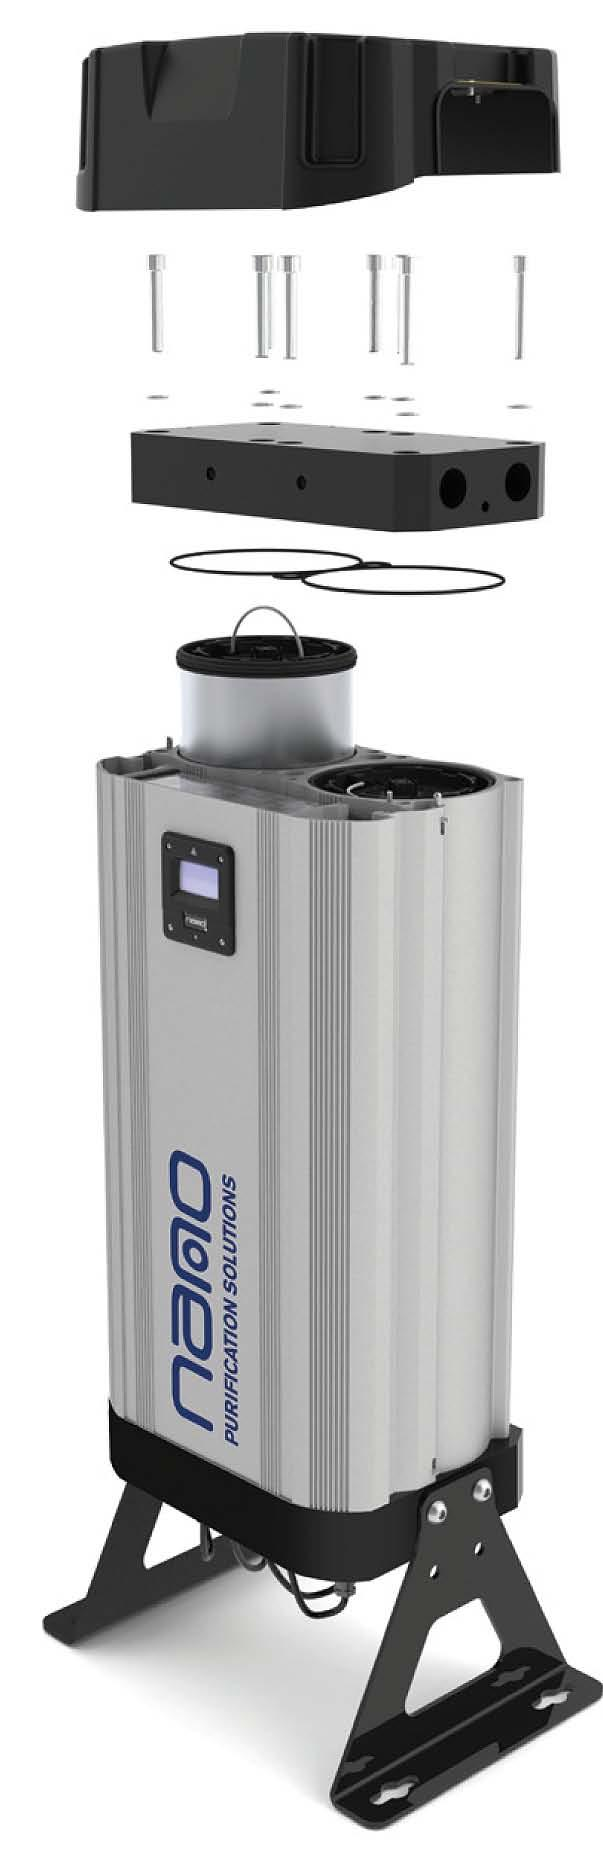 -Series nano dryers 1 & 2 in detail Patented combined filter & desiccant cartridges Water separation, inlet and outlet filtration and desiccant are all integrated into a single cartridge (eliminates